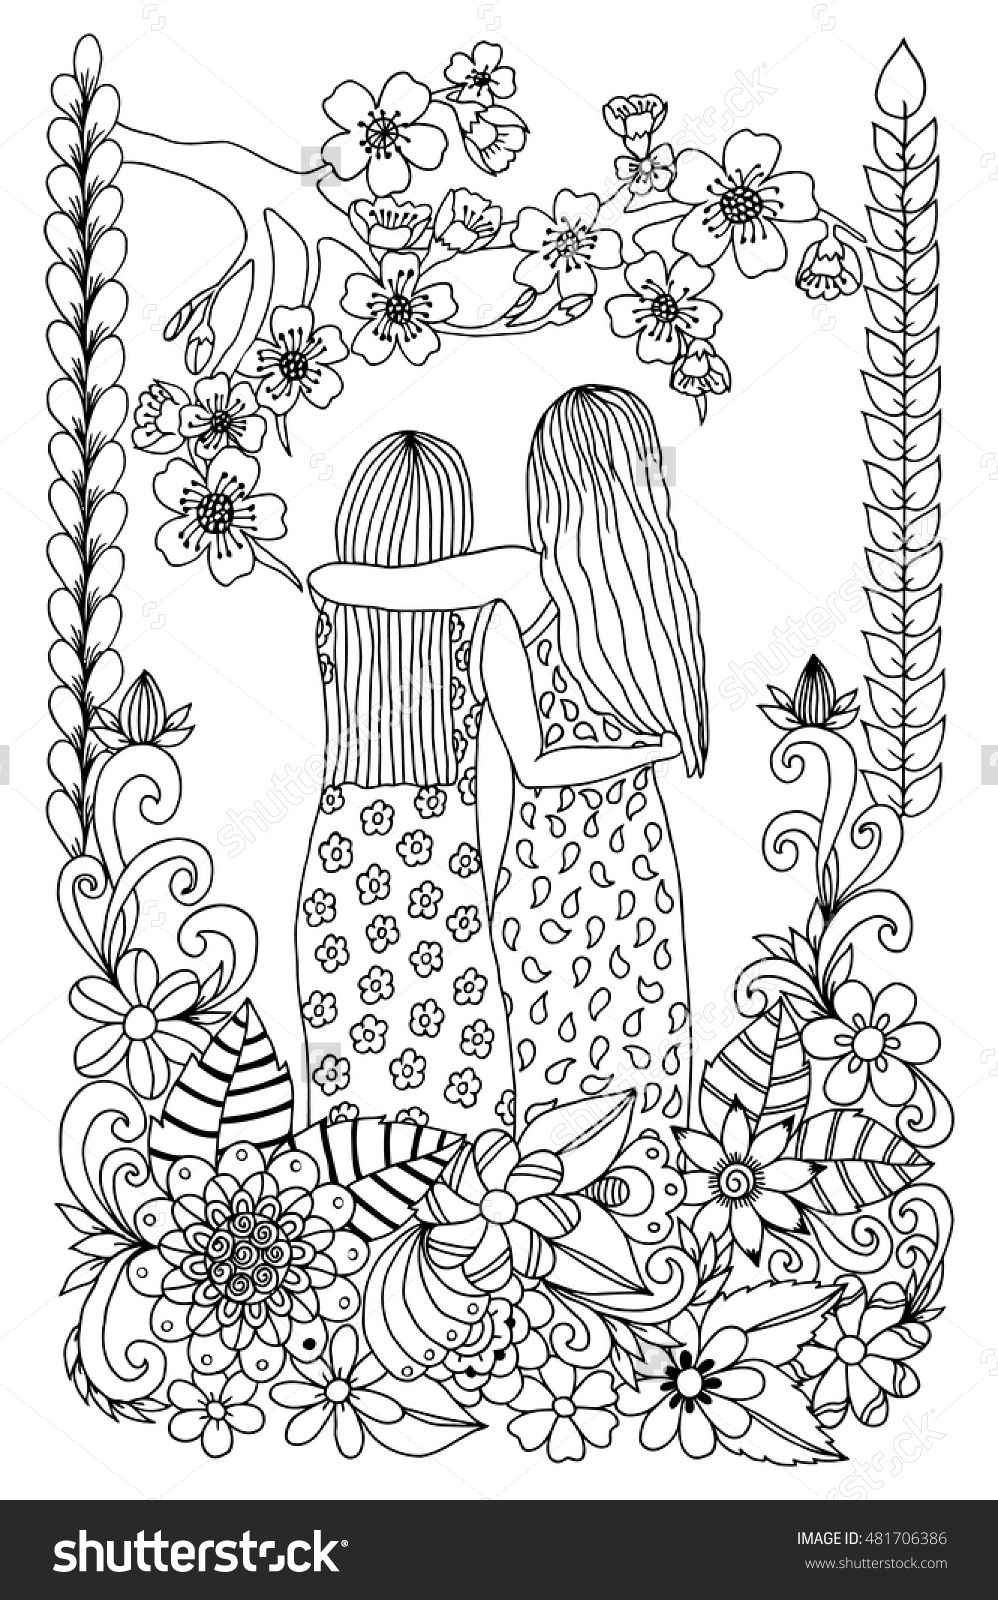 Zentangle Girlfriend At Sakura Flowers Doodle Drawing Coloring Anti Stress For Adults 481706386 Shutterstock Coloring Pages Free Coloring Pages Zen Colors